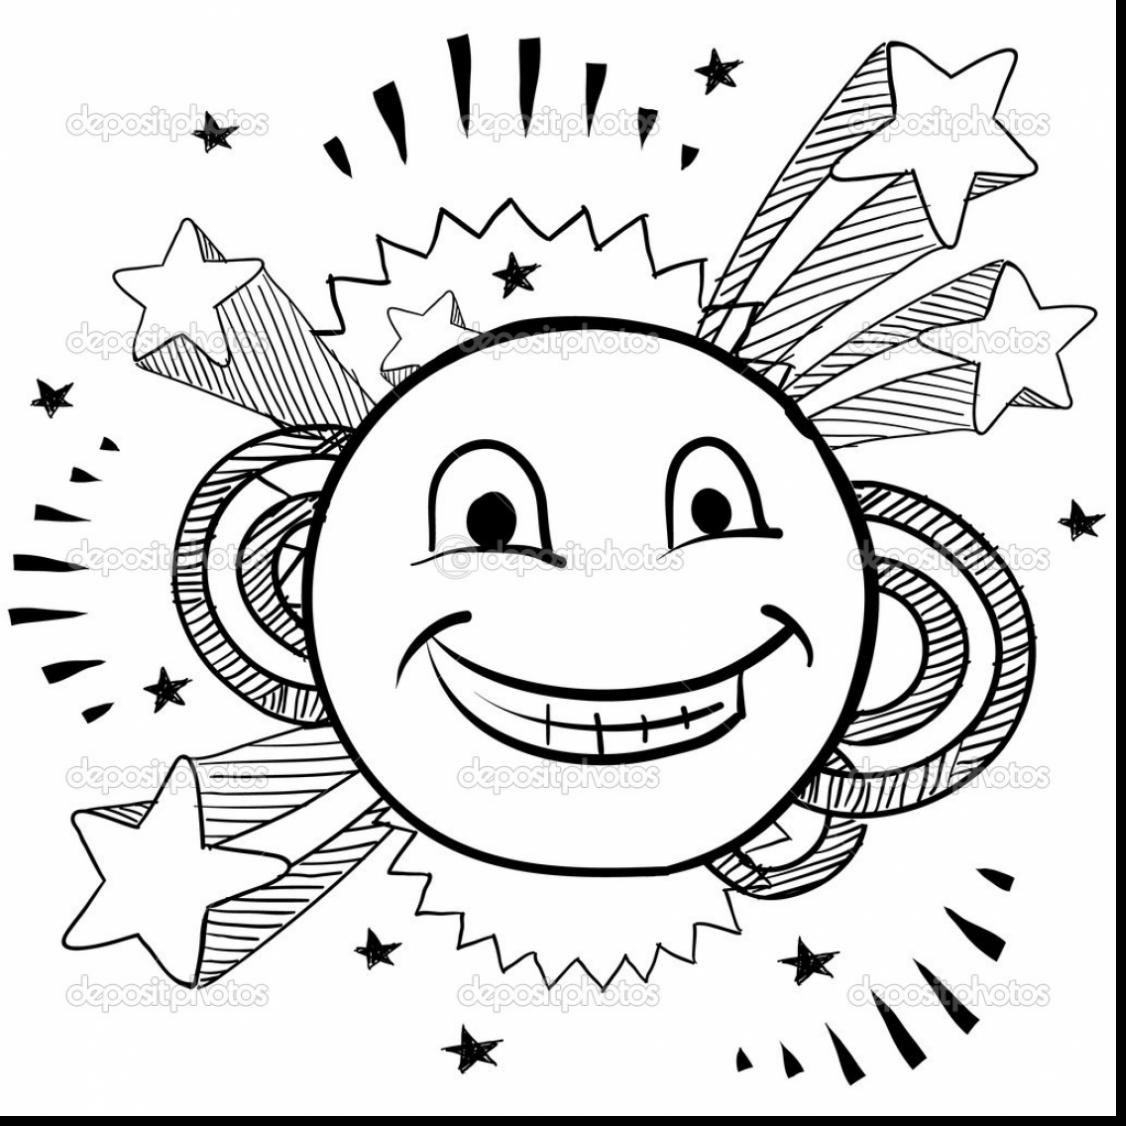 1126x1126 Coloring Pages Elegant Smiley Face Coloring Pages Good With Page